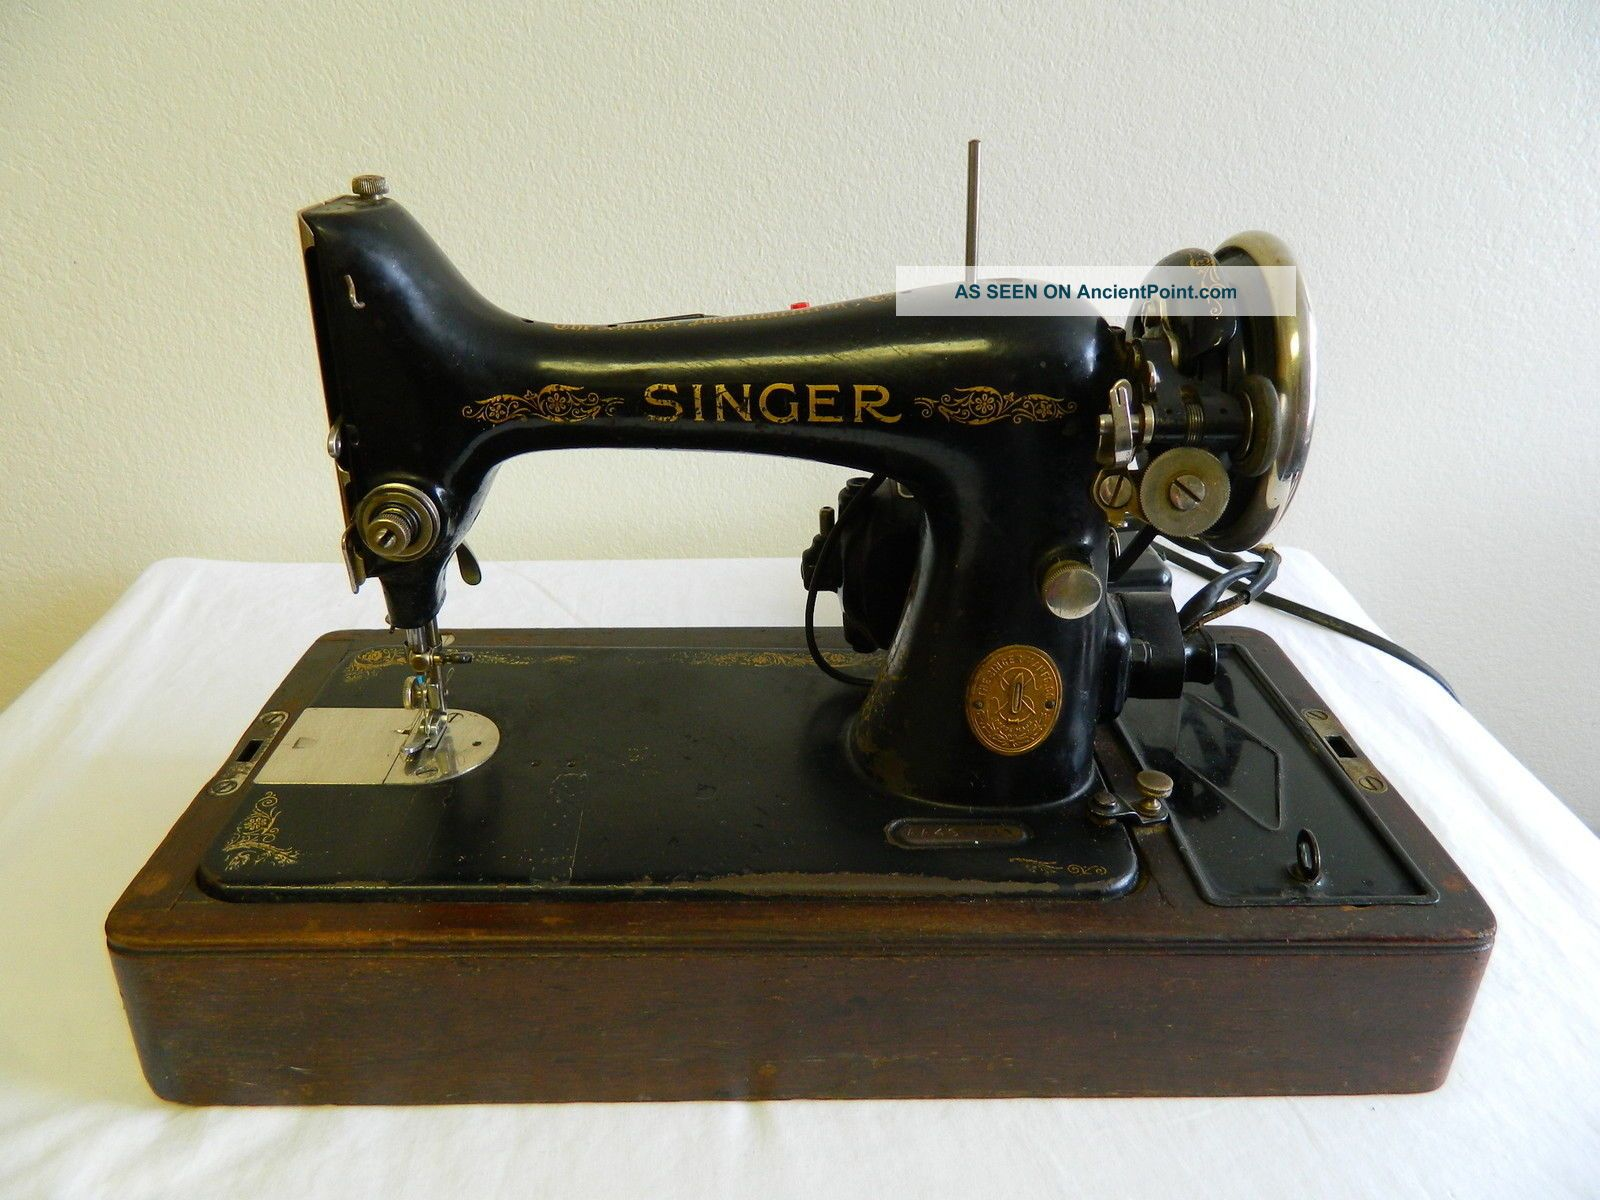 Antique Singer Sewing Machine Model 99 1925 With Case Ser Aa439211 Sewing Machines photo